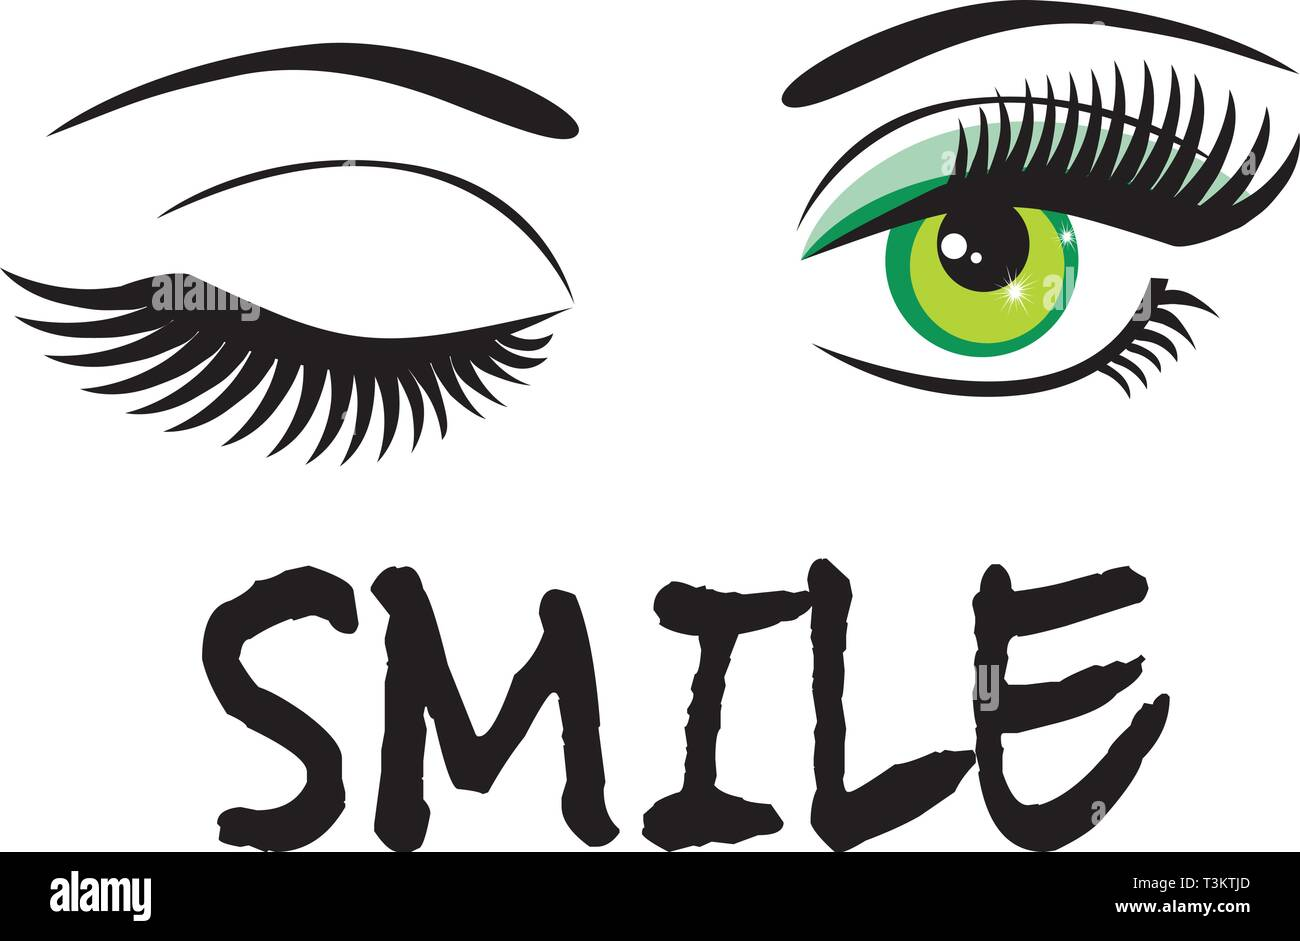 vector illustration of green eyes winking with smile text. - Stock Vector